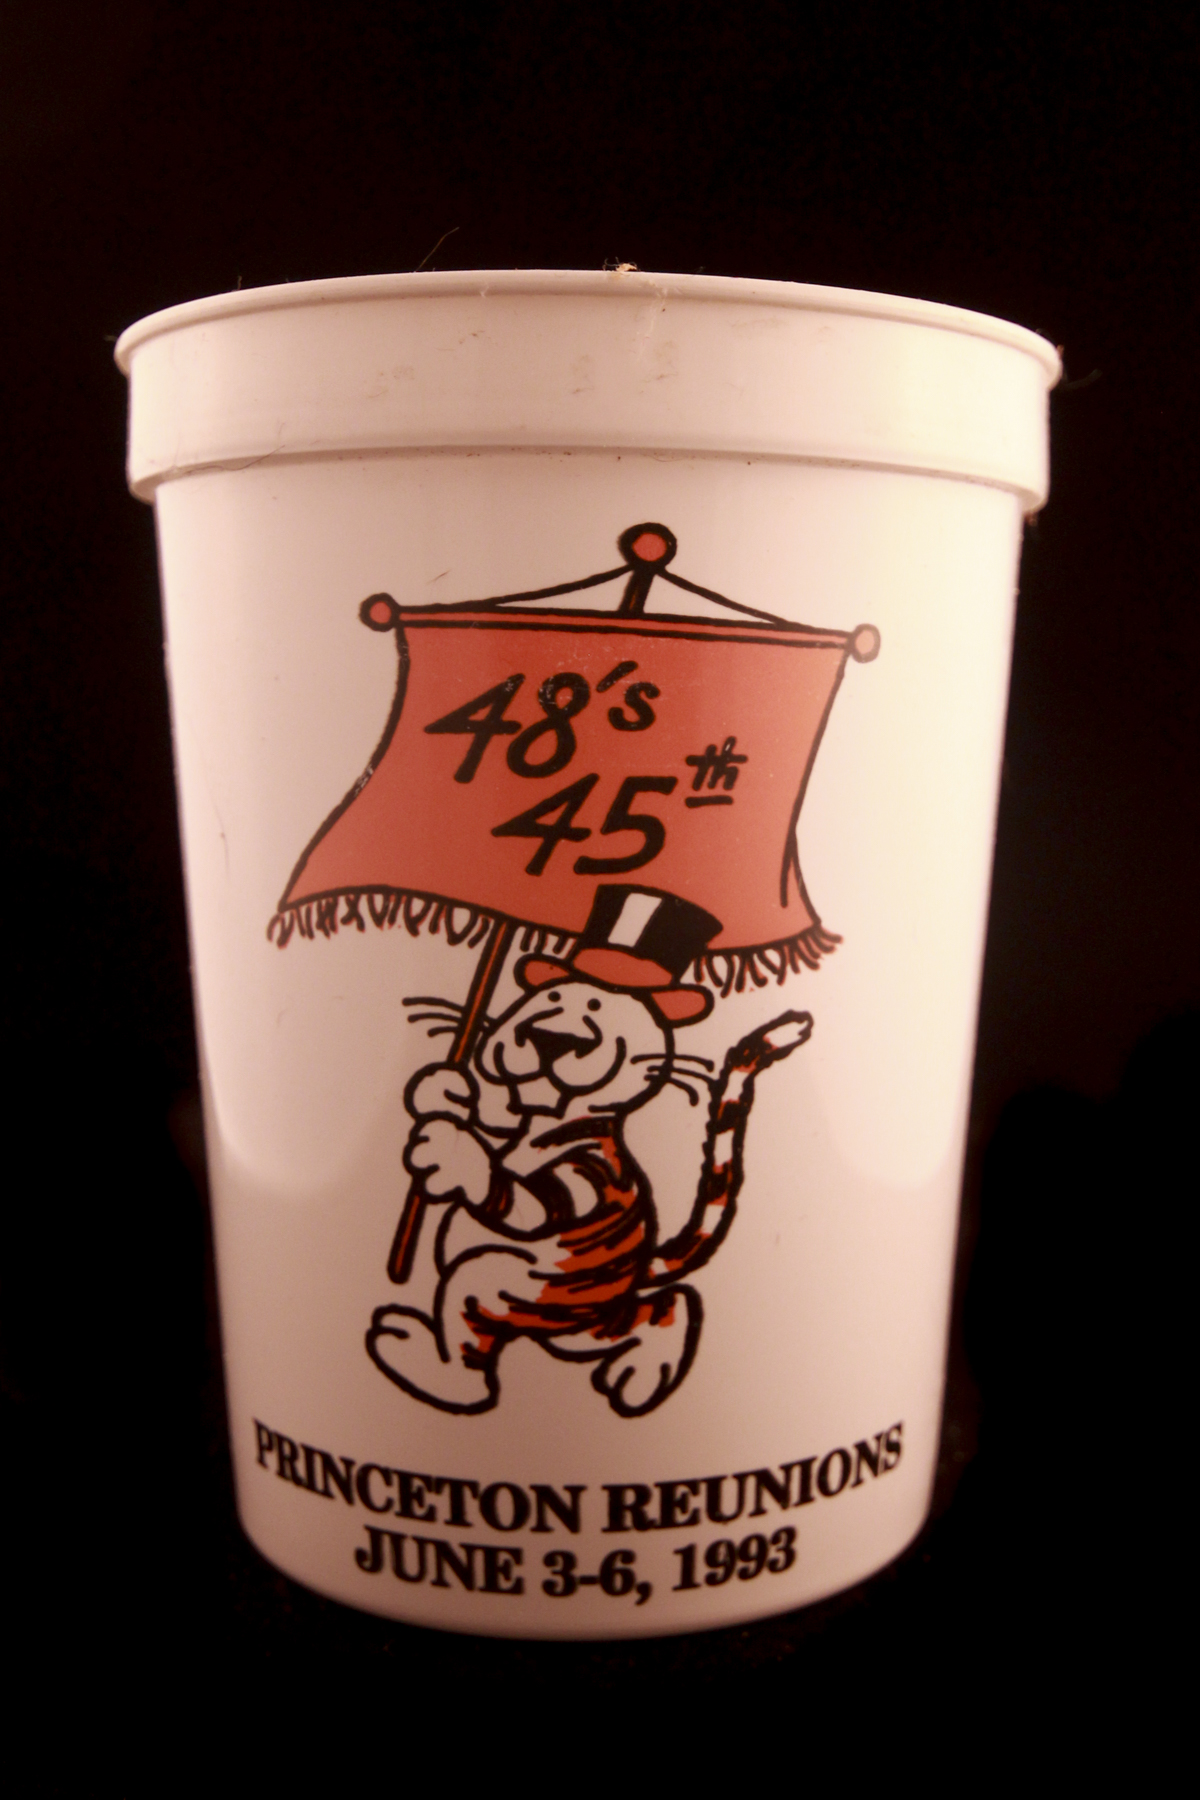 Beer Cup 1948 45th Reunion